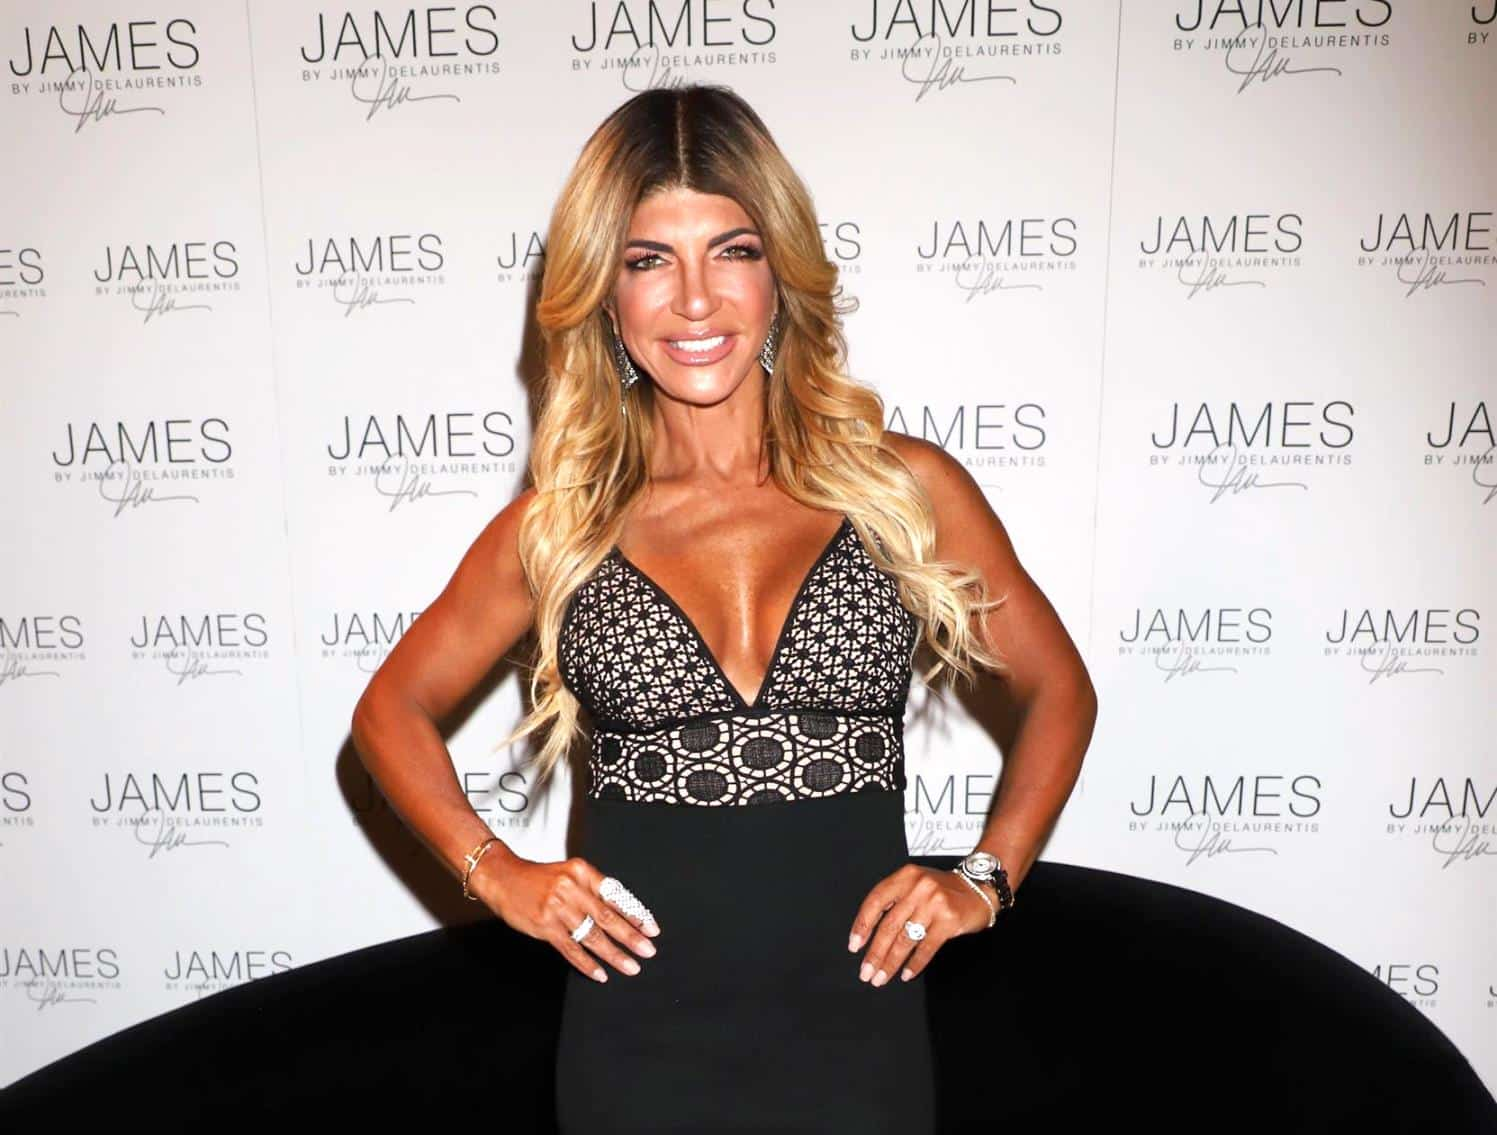 PHOTOS: RHONJ's Teresa Giudice Gets a Home Makeover, See Before and After Pics of Her Newly Redecorated Home and Brightened Up Space!